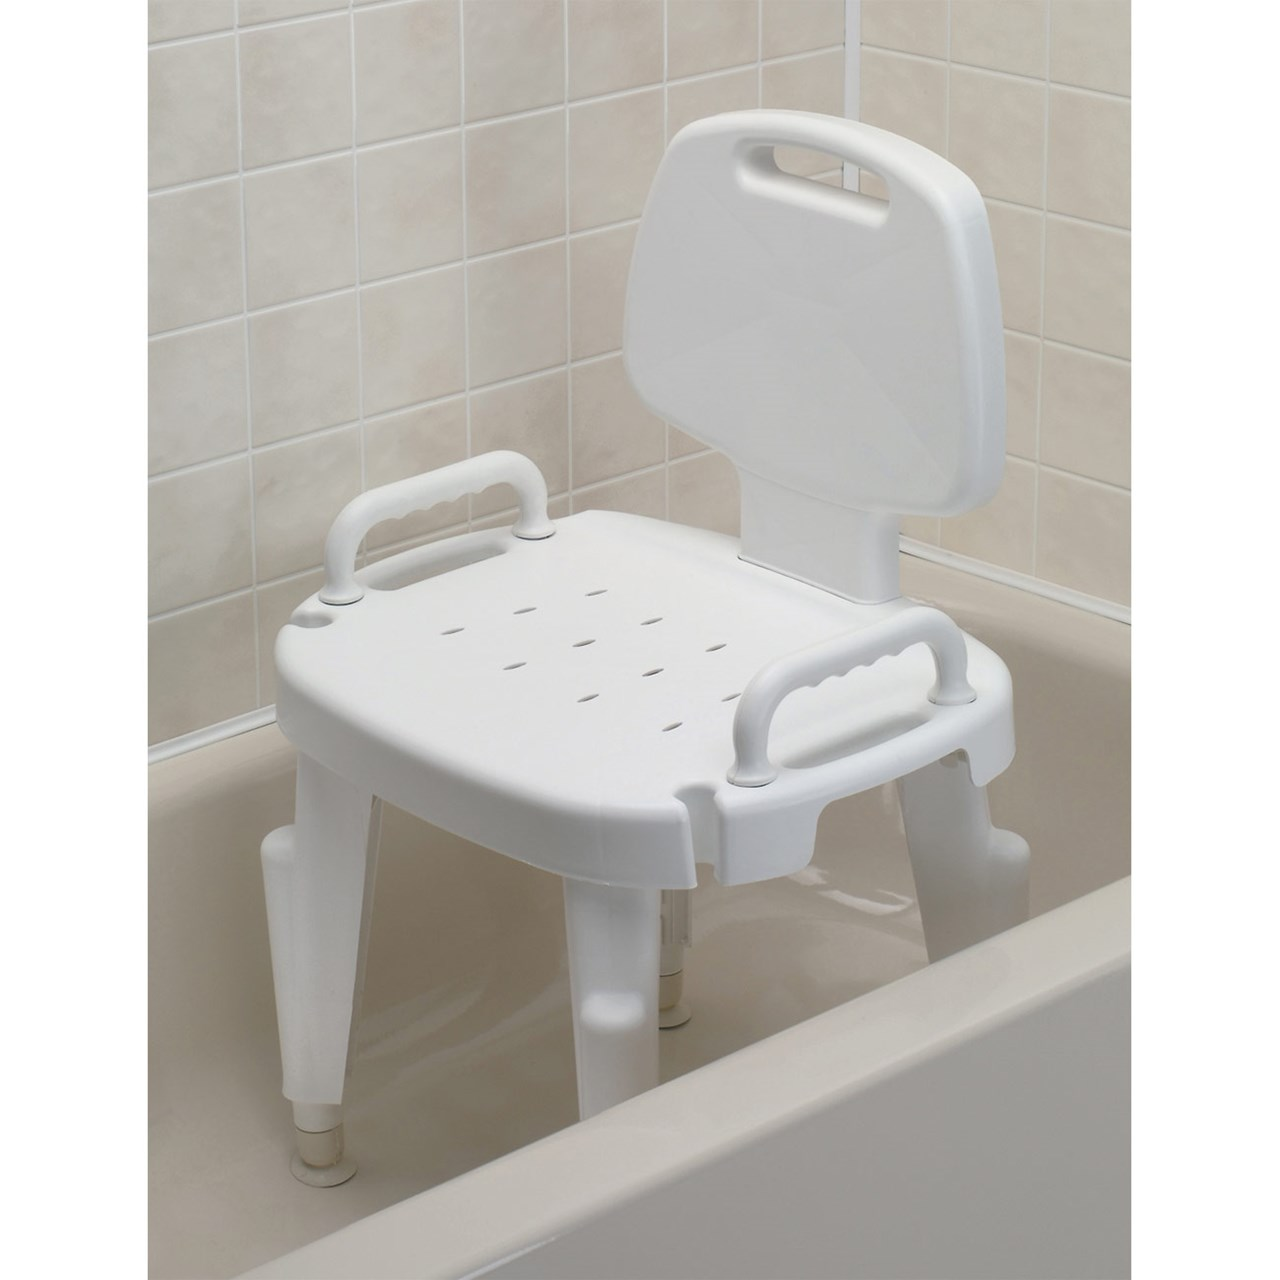 Chair For Bathtub Maxiaids Adjustable Shower Seat With Arms And Back